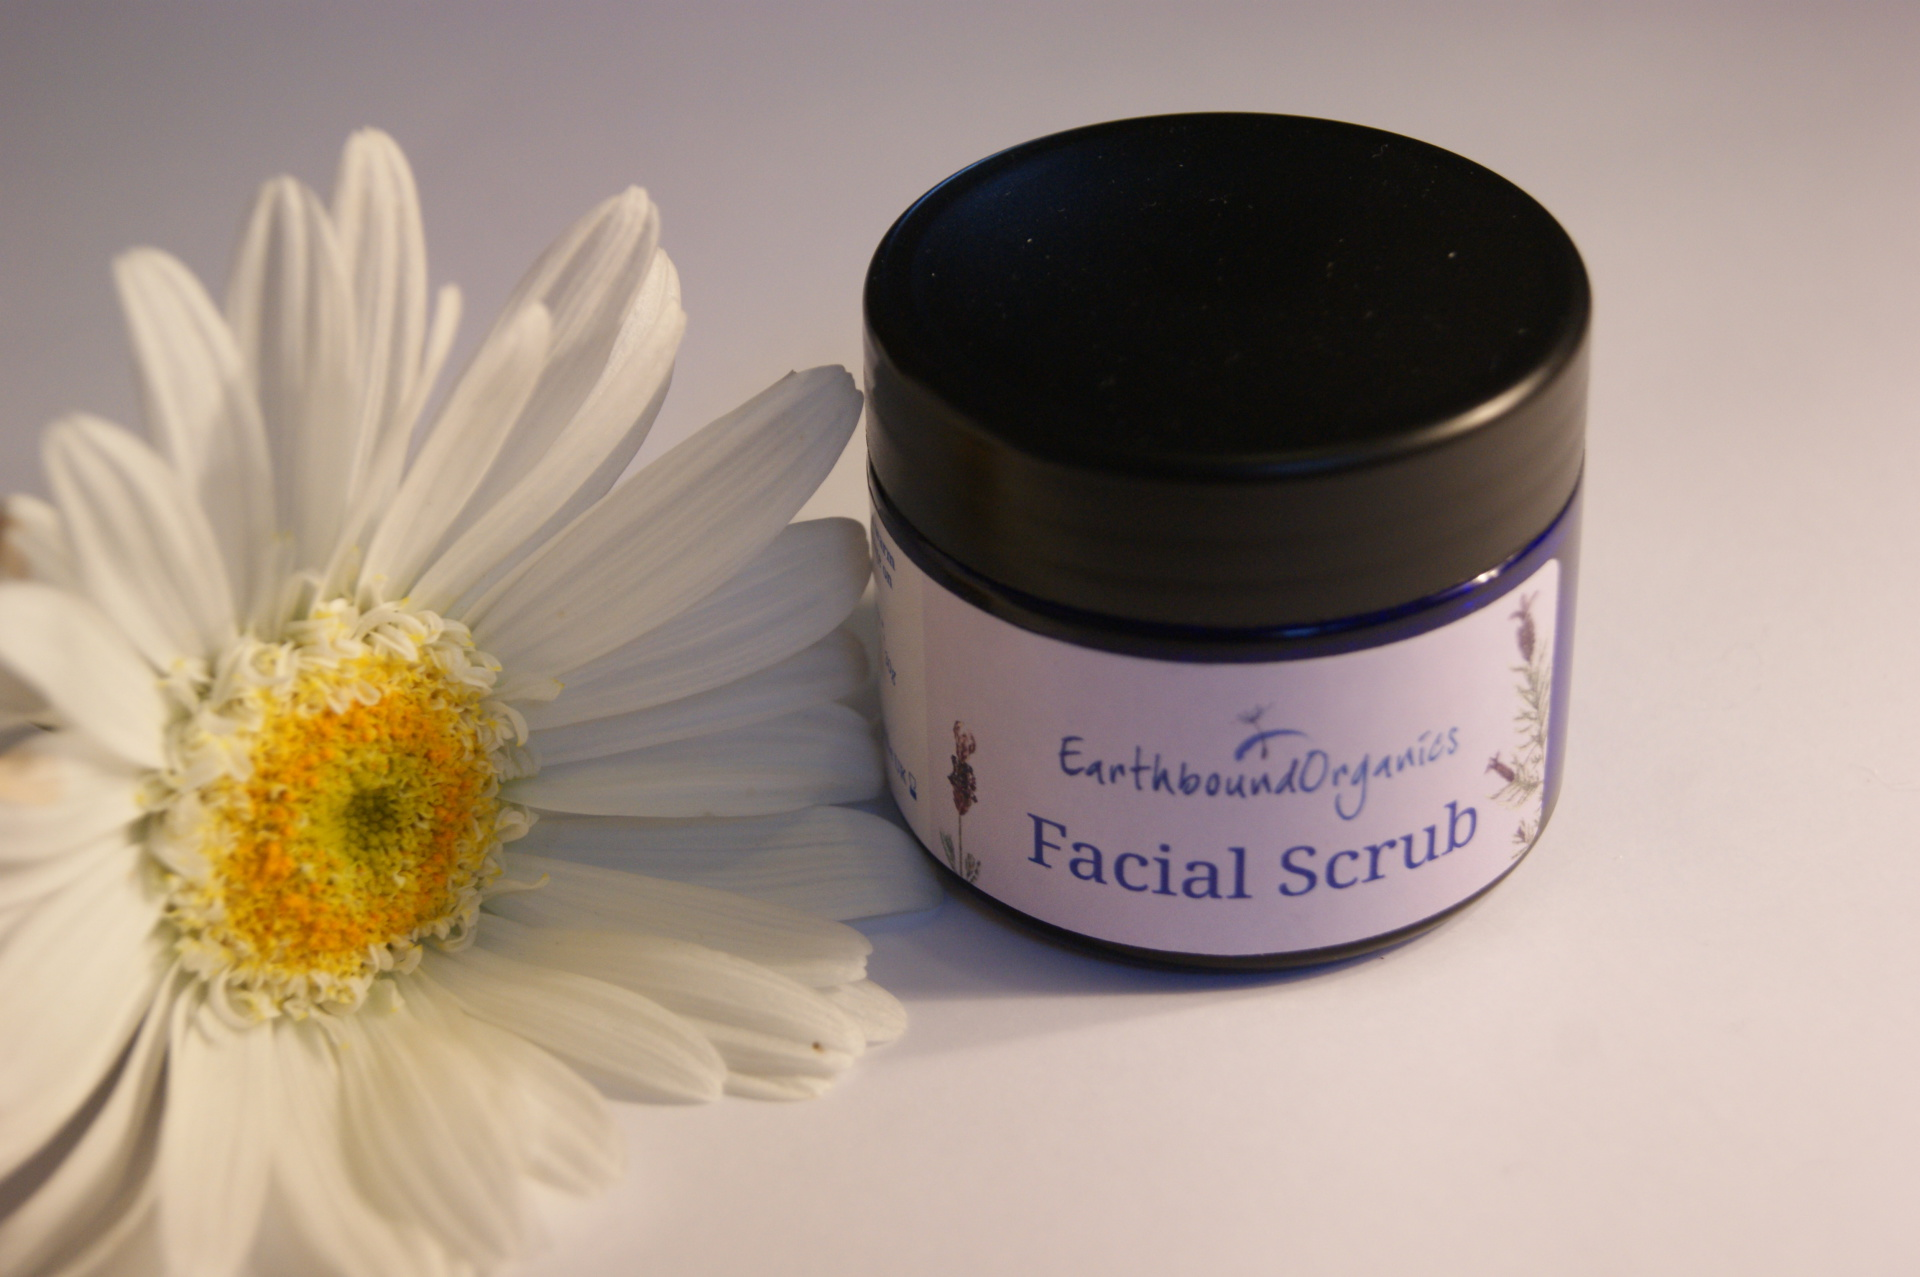 Earthbound Organics - Facial Scrub